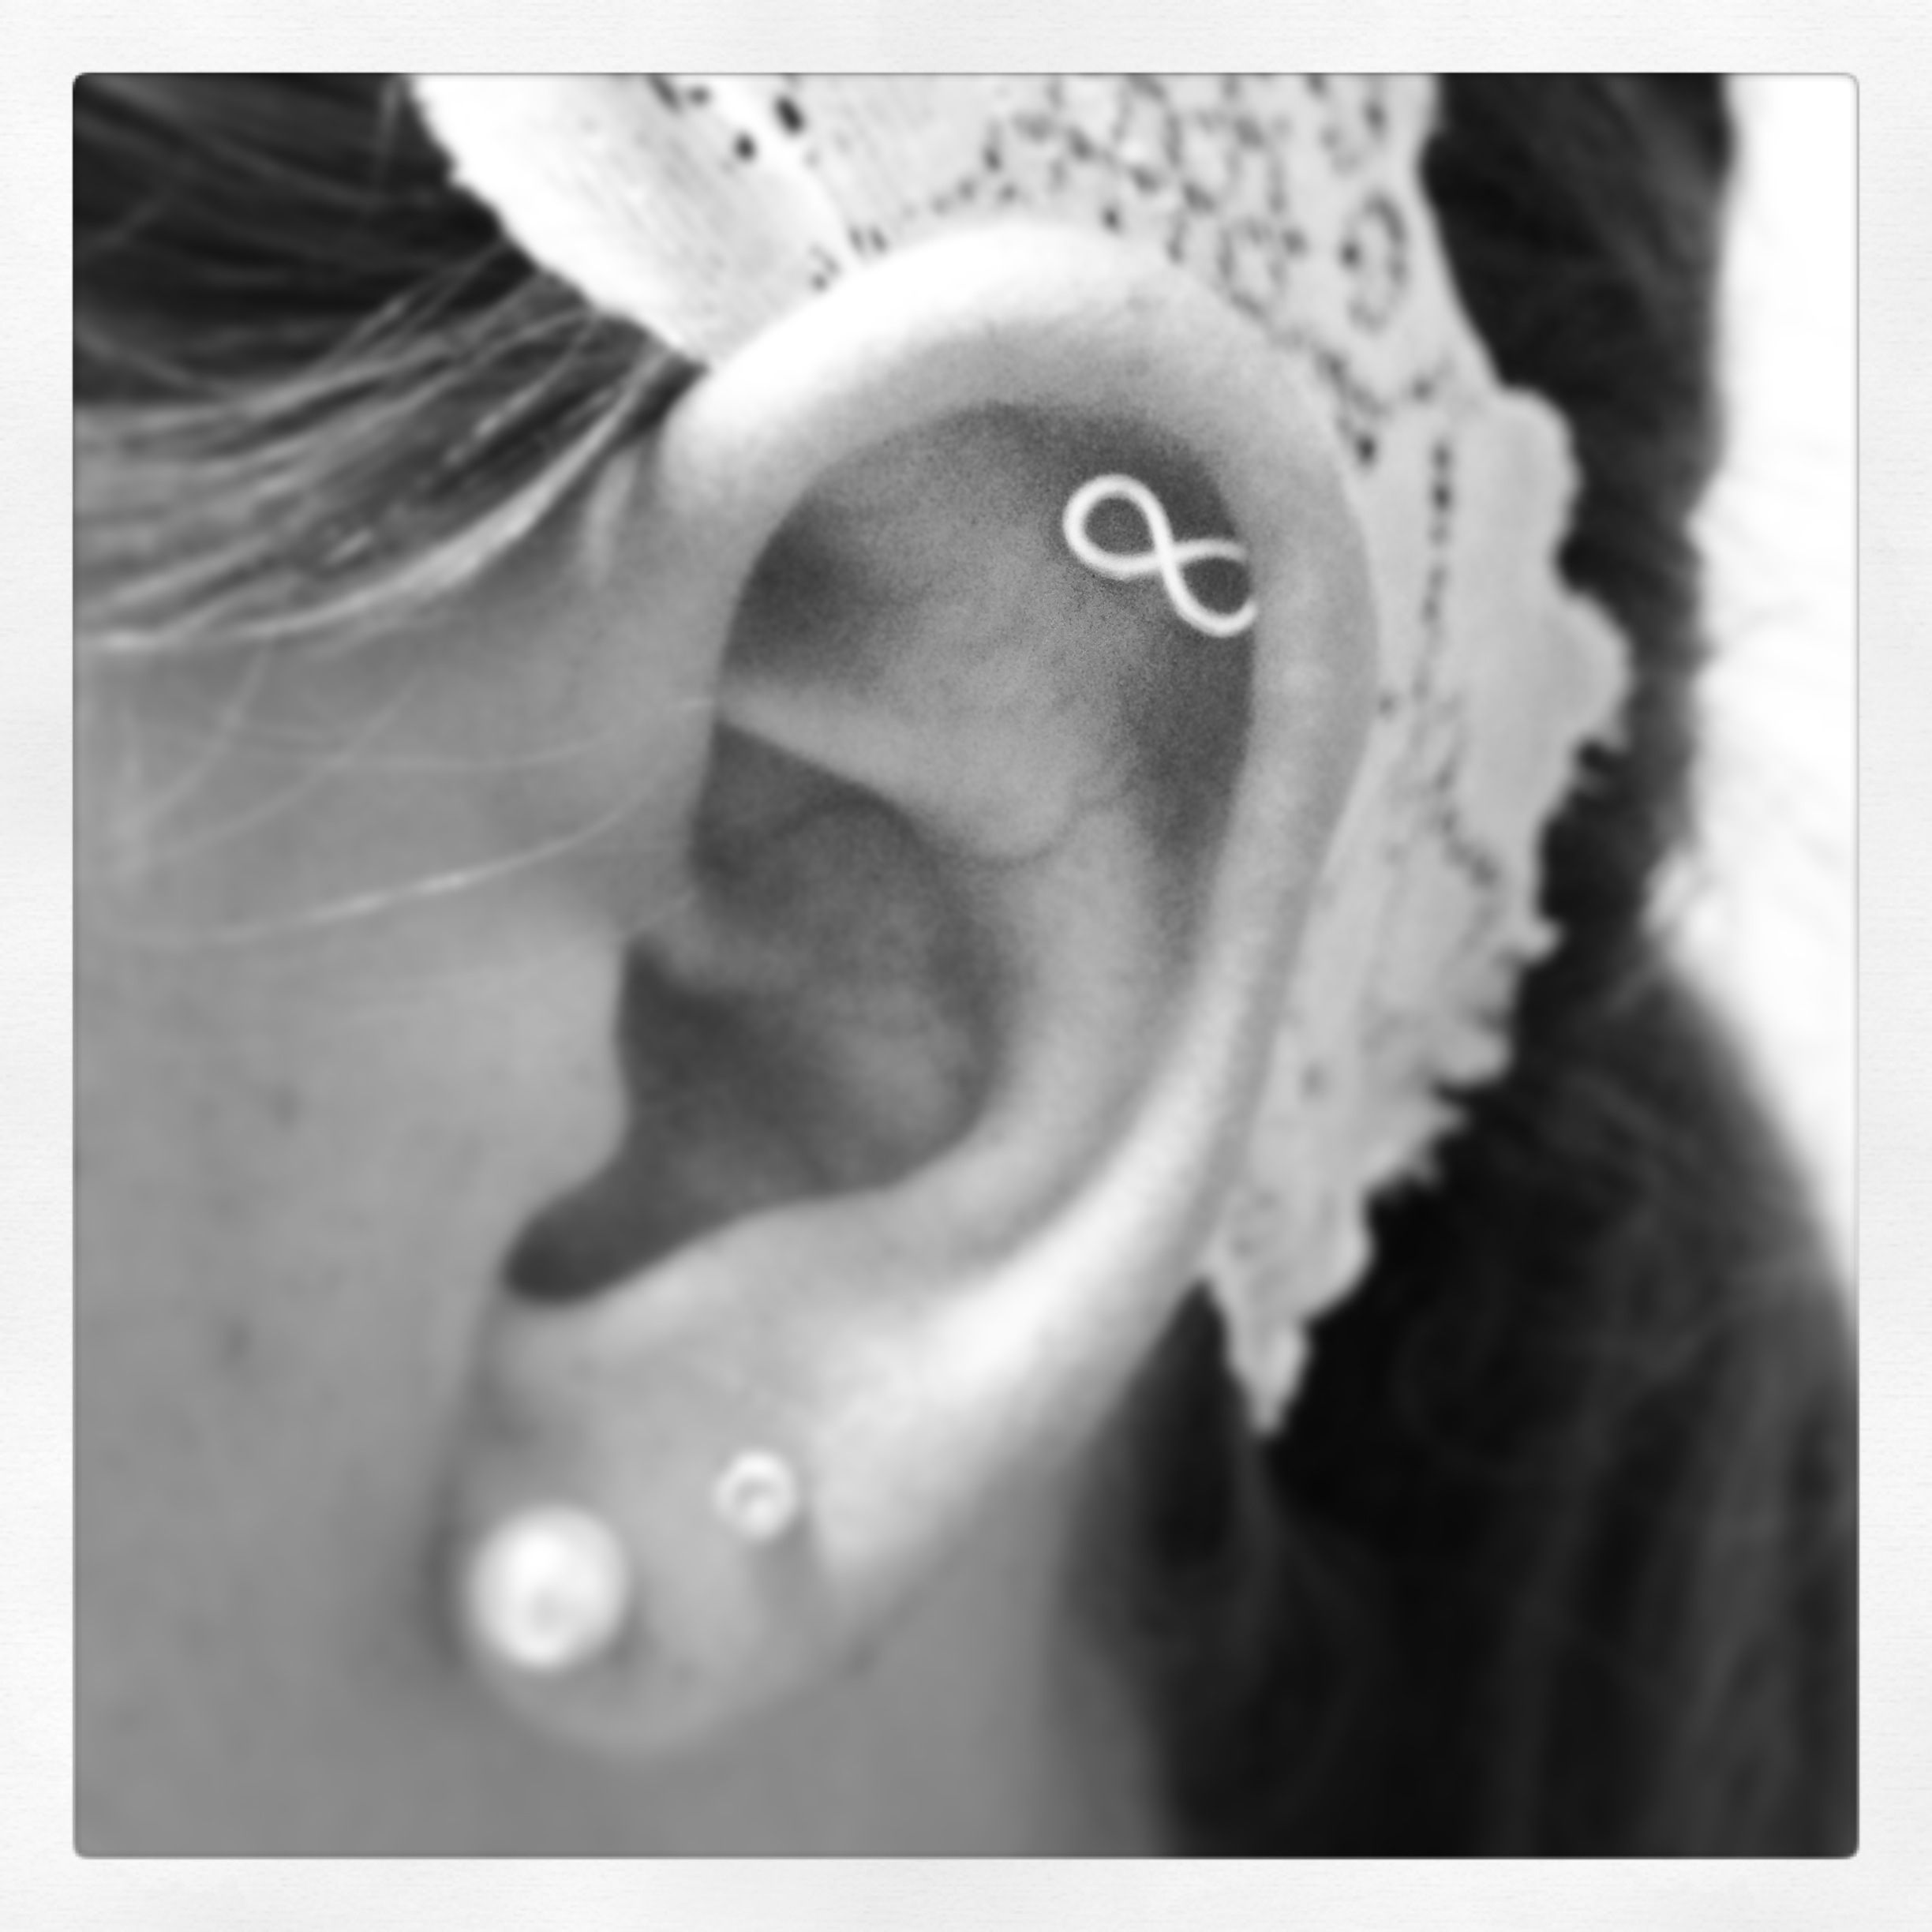 #infinity #piercing #earring For Sure Need An Infinity Cartilage Piercing :)